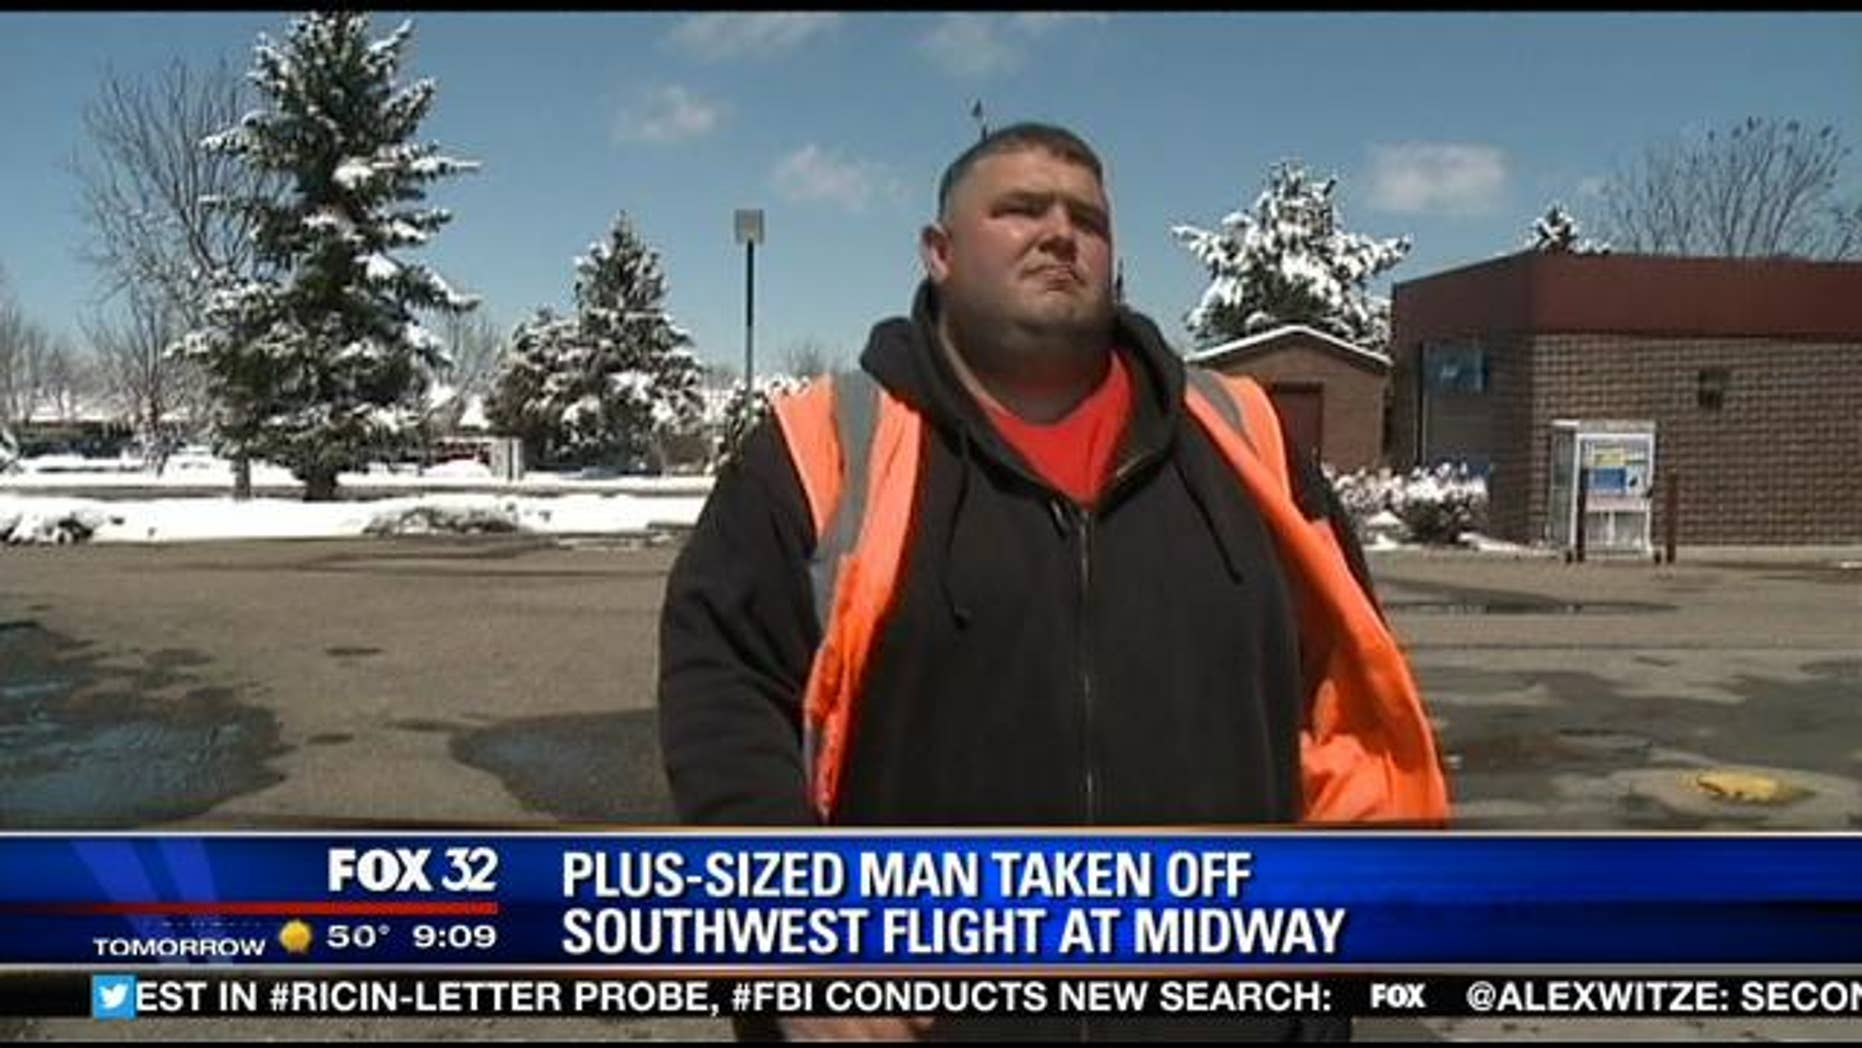 Matthew Harper claims he was kicked off a Southwest Airlines flight for being overweight.